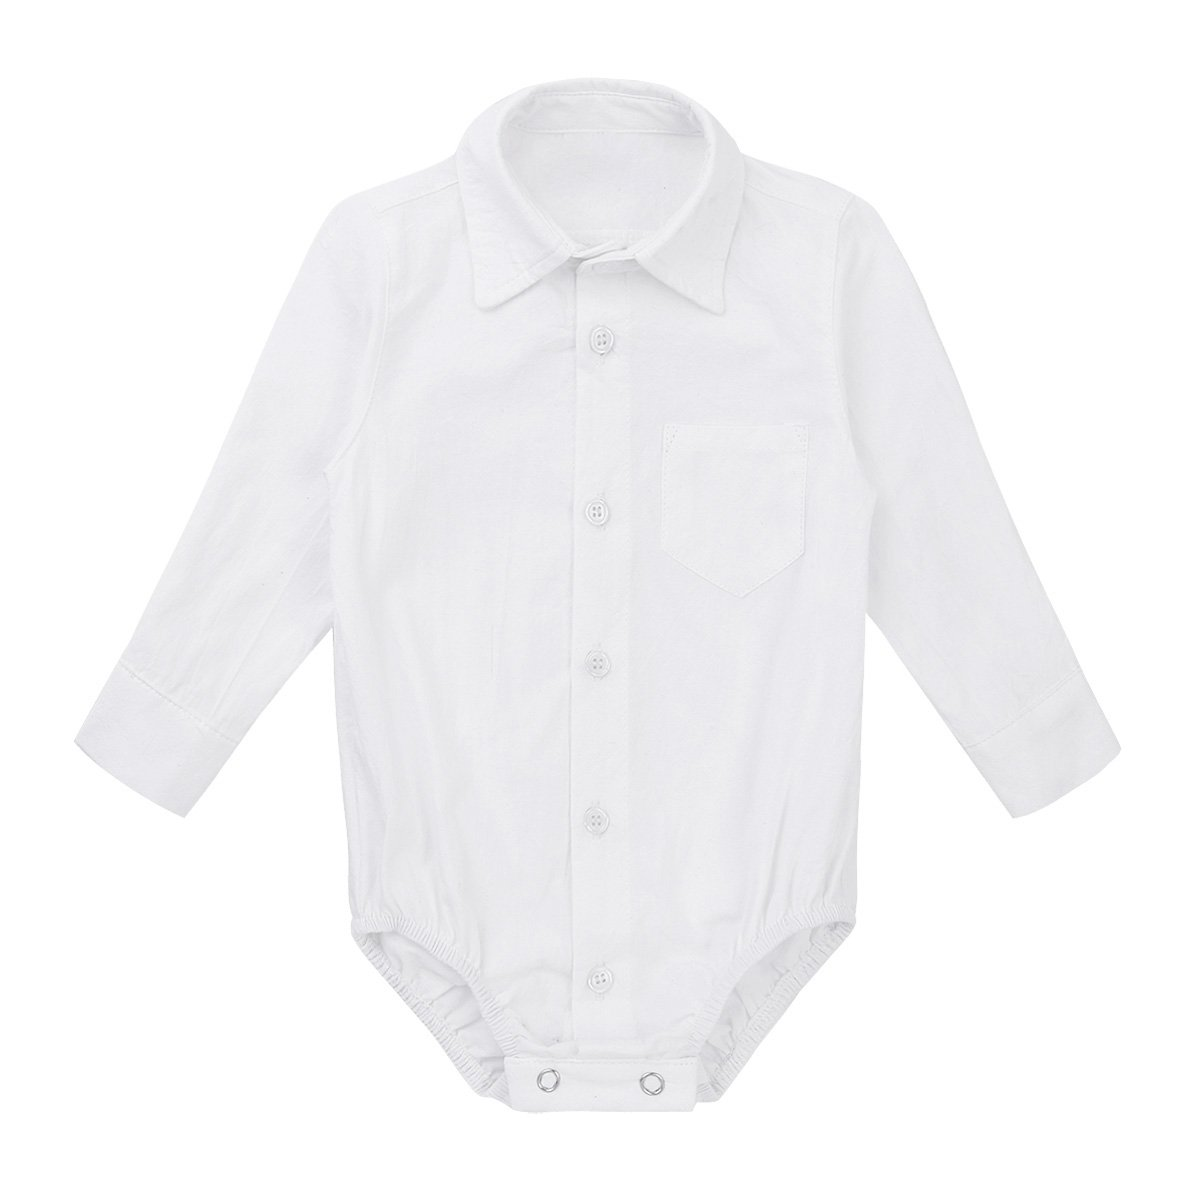 Freebily Infant Baby Boy Long/Short Sleeve Formal Dress Shirt Toddler Romper Bodysuit Wedding Baptism Outfits